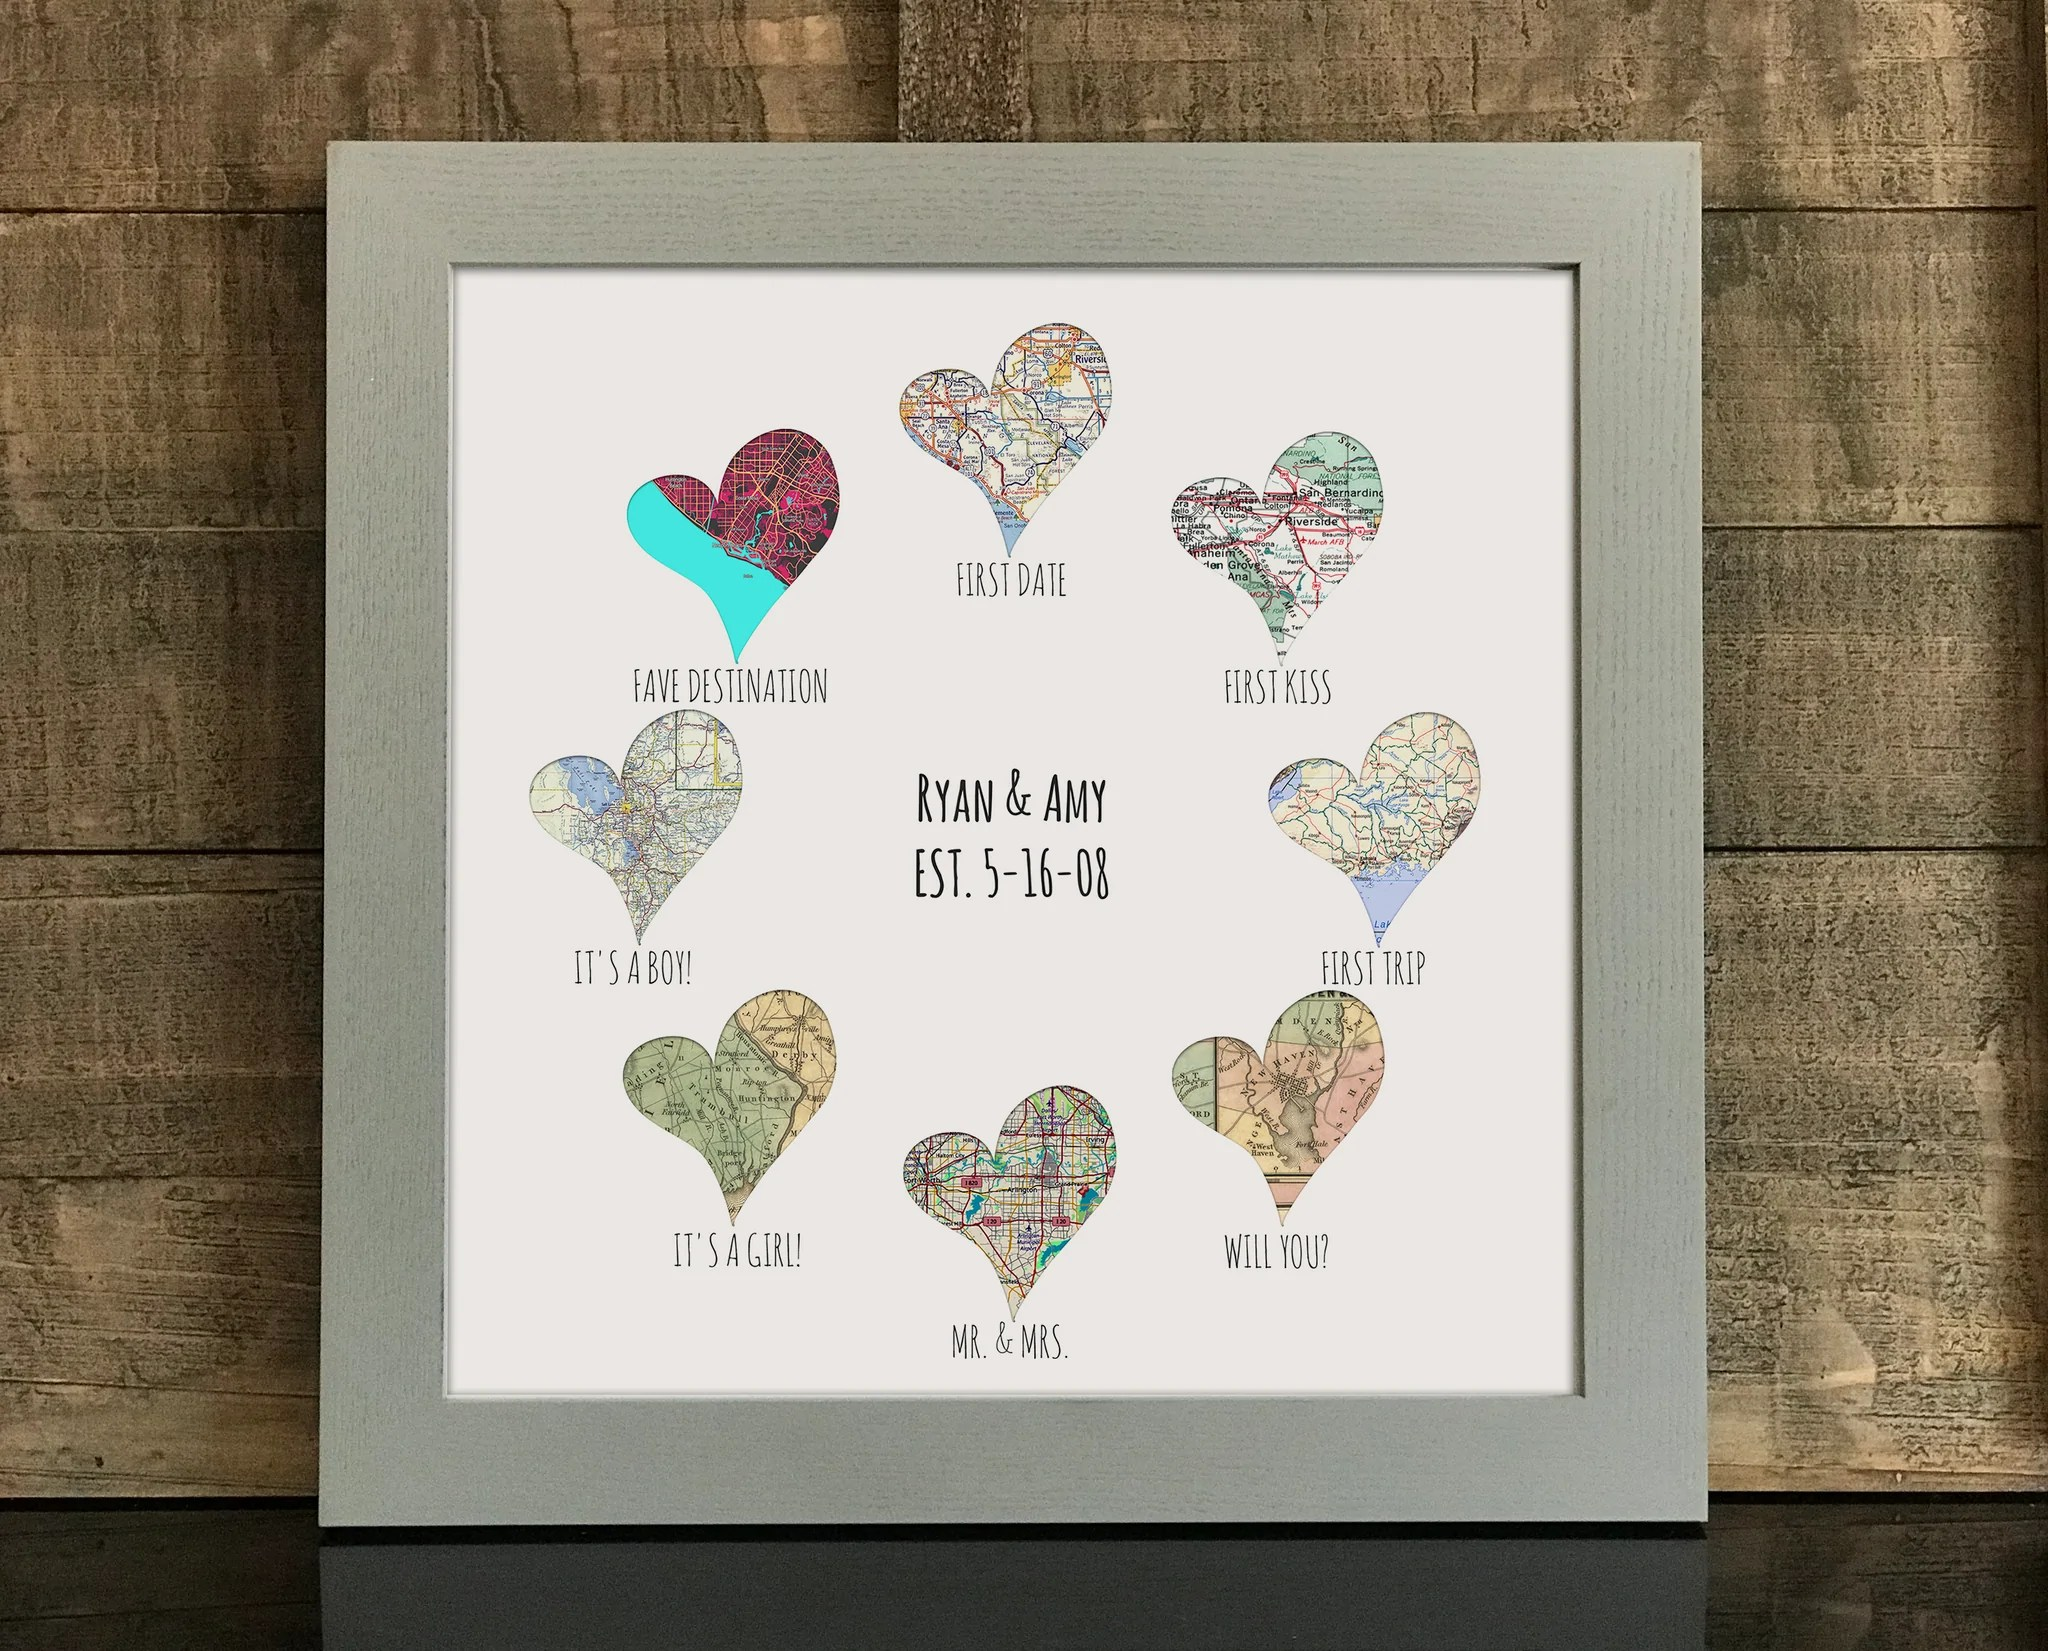 Relationship Goals Print 8 Personalized Heart Maps